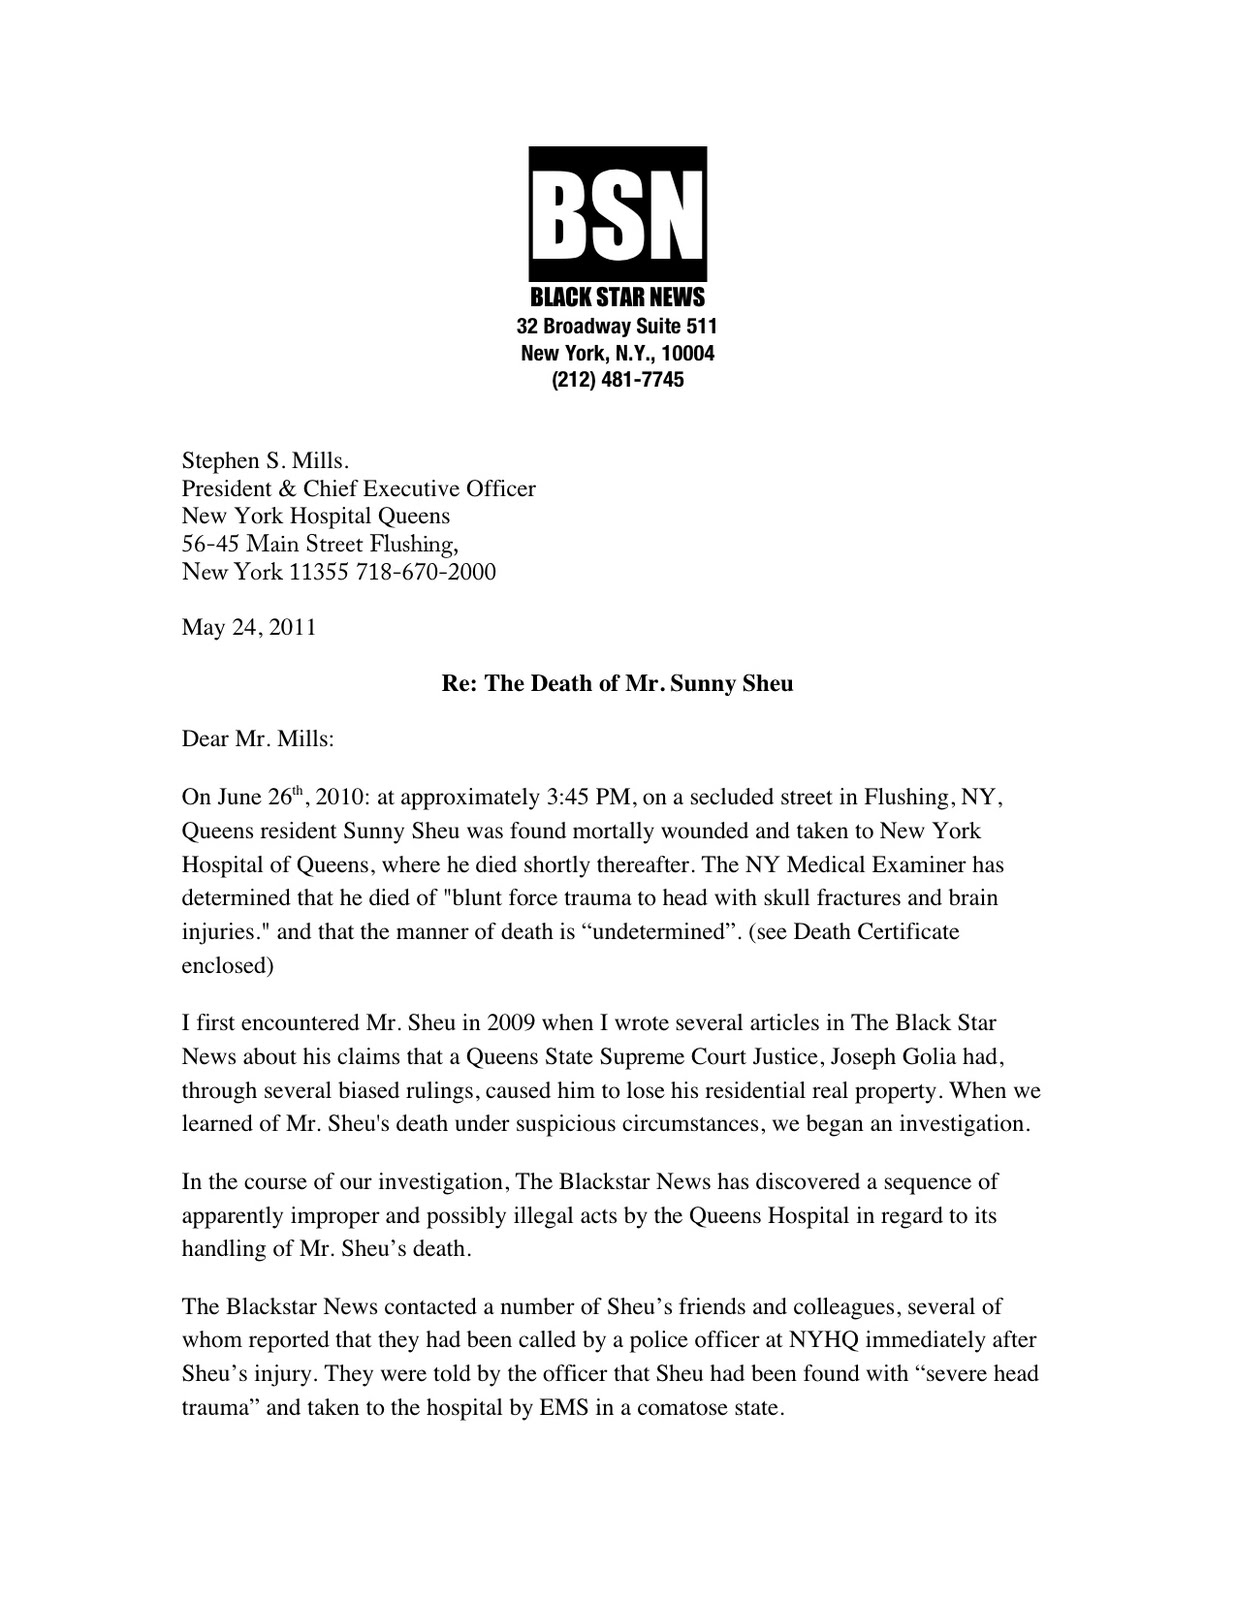 The murder of sunny sheu black star news letter to new york black star news letter to new york hospital ceo stephen mills and chairman george heinrich 1betcityfo Images